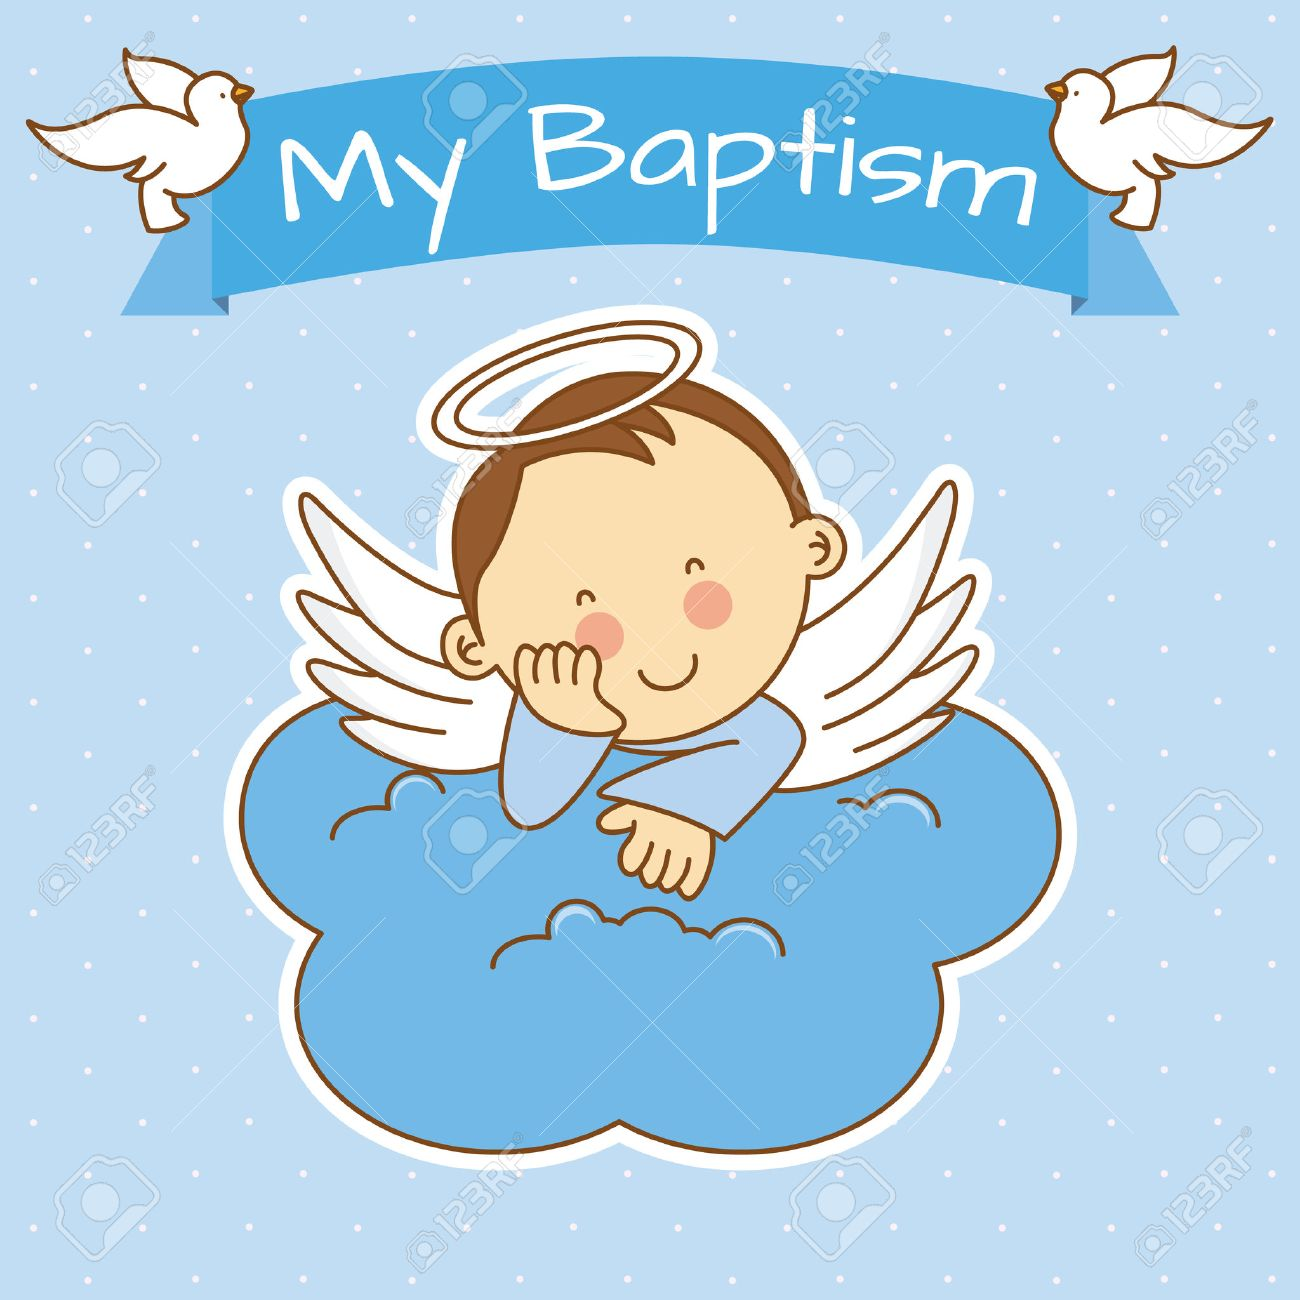 5 252 baptism cliparts stock vector and royalty free baptism rh 123rf com baby girl baptism clipart baby girl baptism clipart